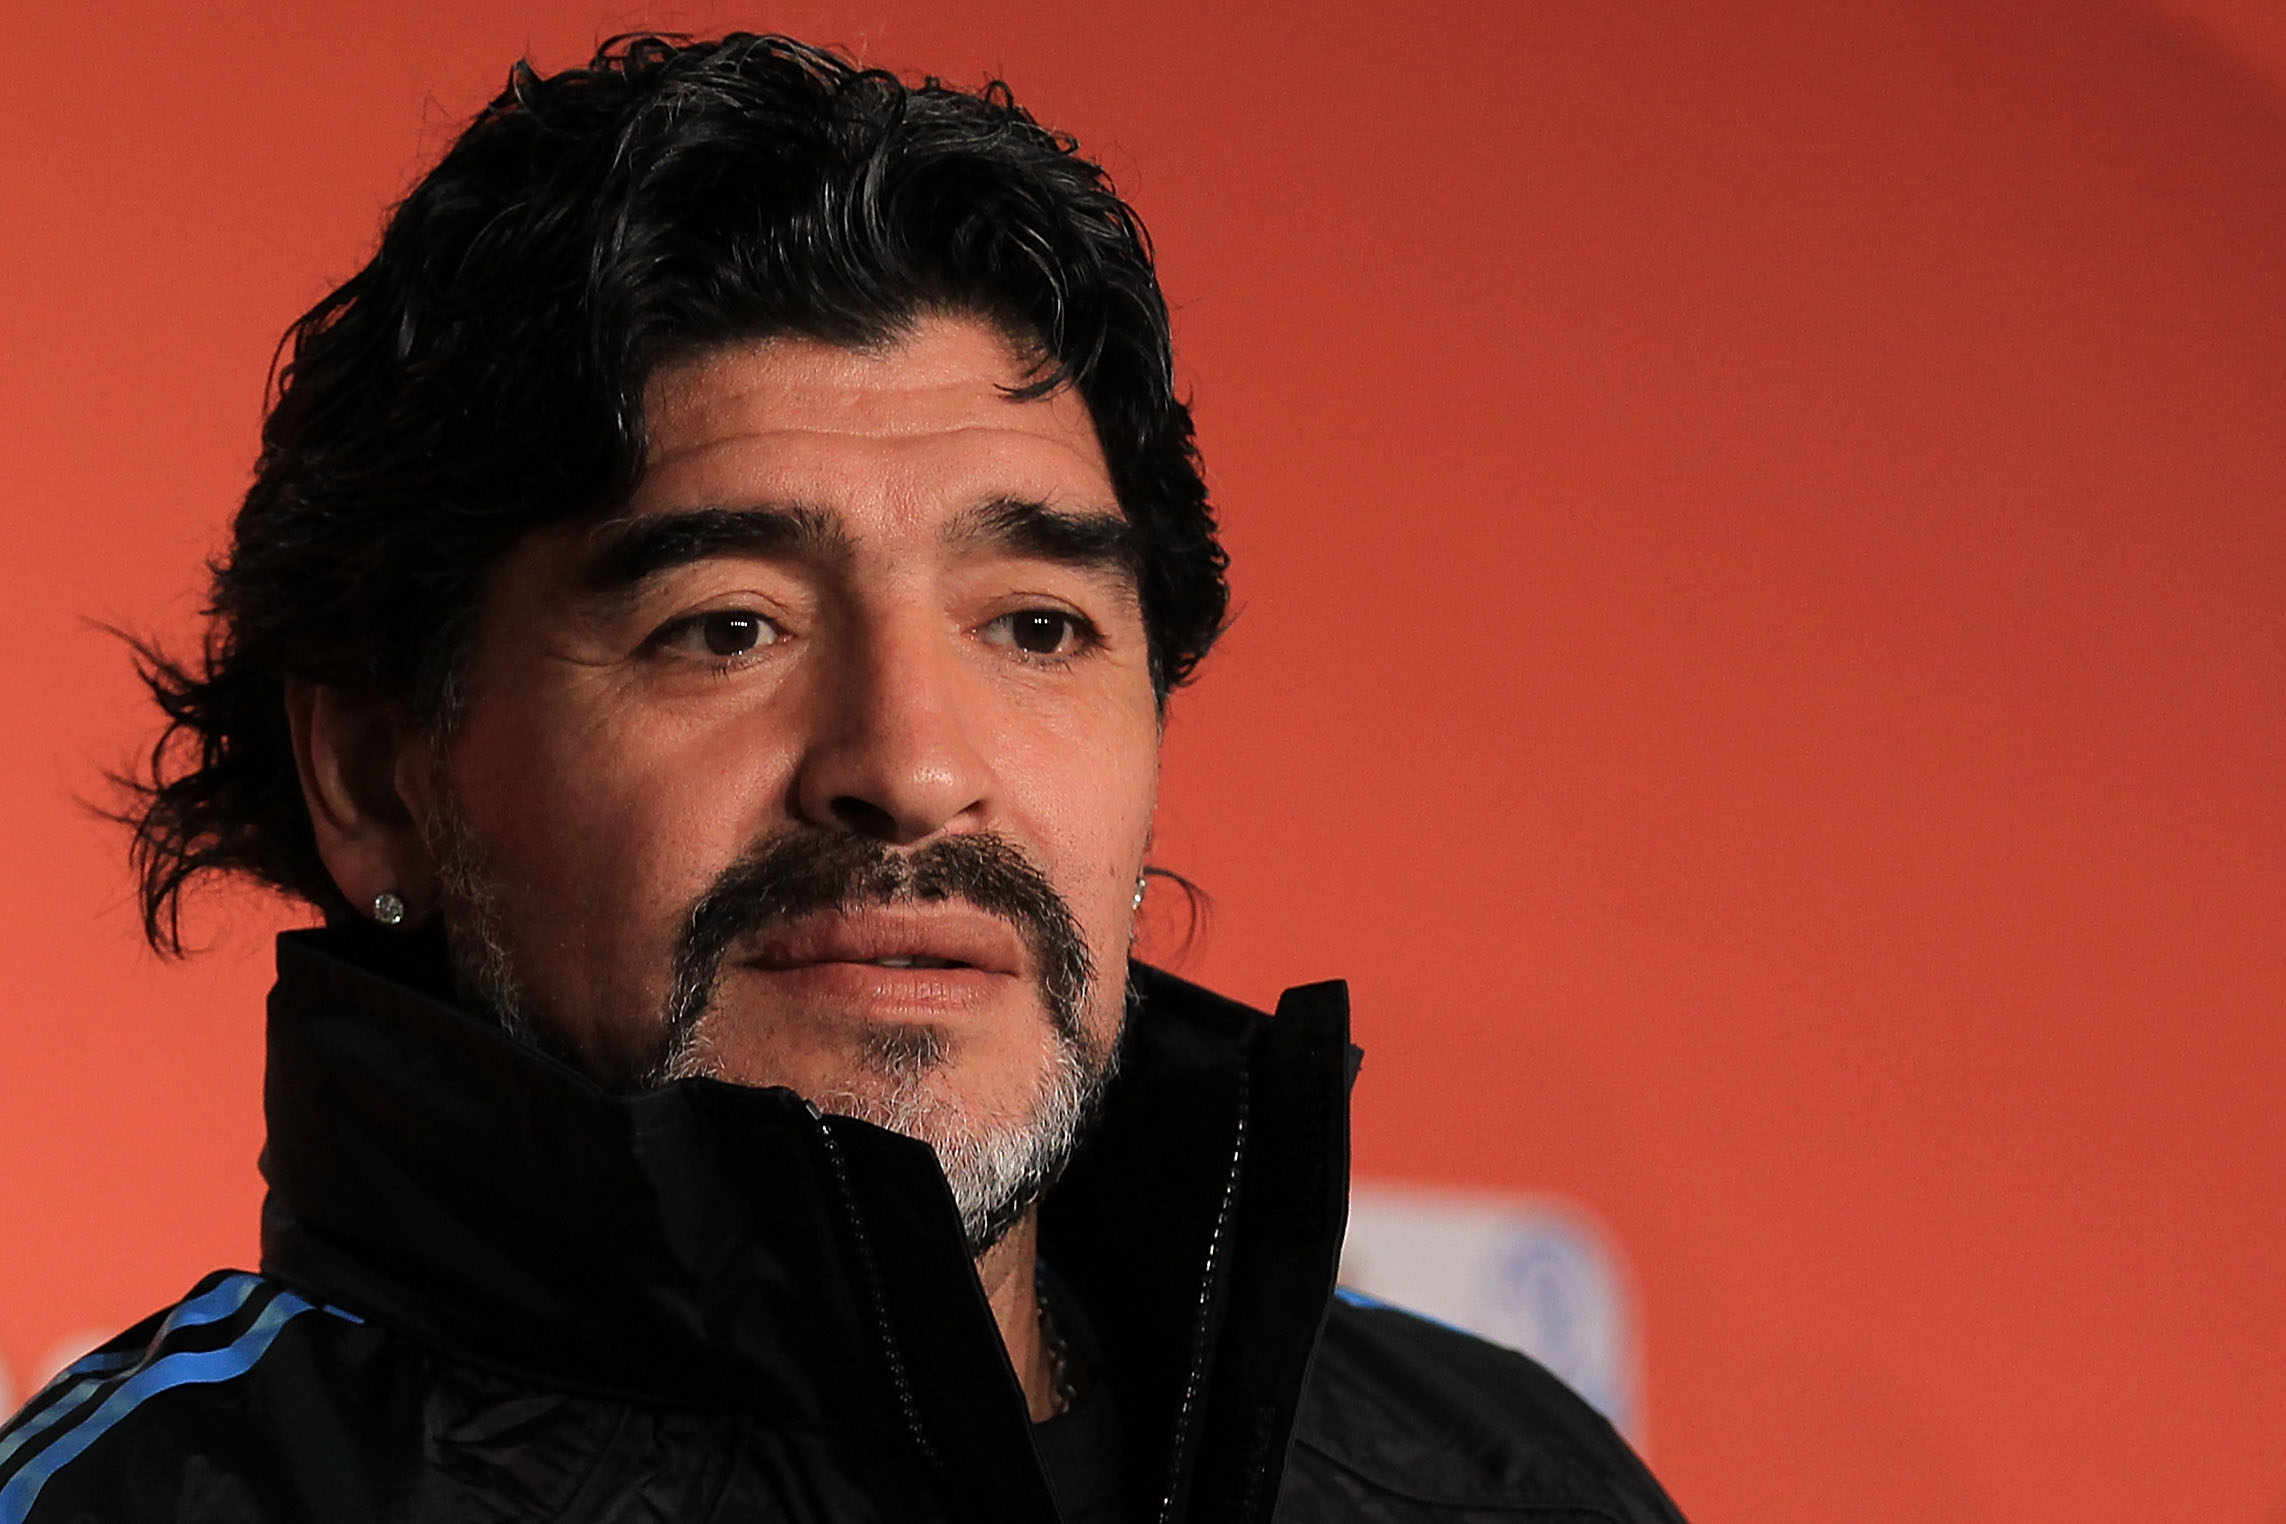 Soccer legend Diego Maradona has passed away at the age of 60